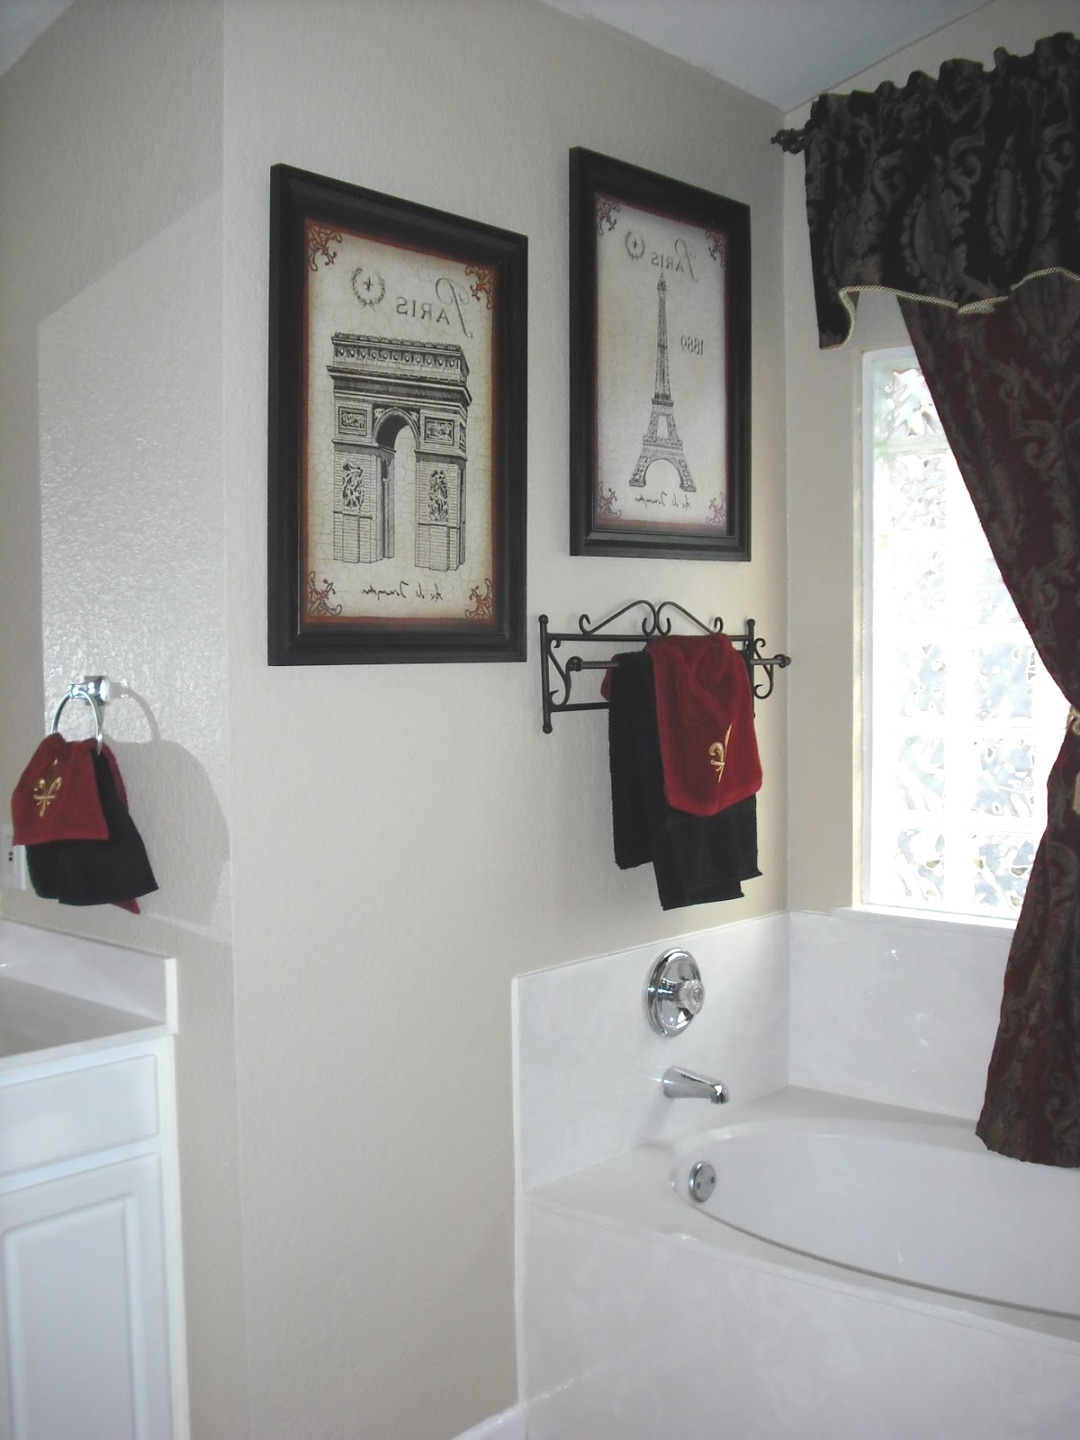 paris themed bathroom decor design ideas and decor in image of paris bathroom decor decorations bathroom images bath decor ideas